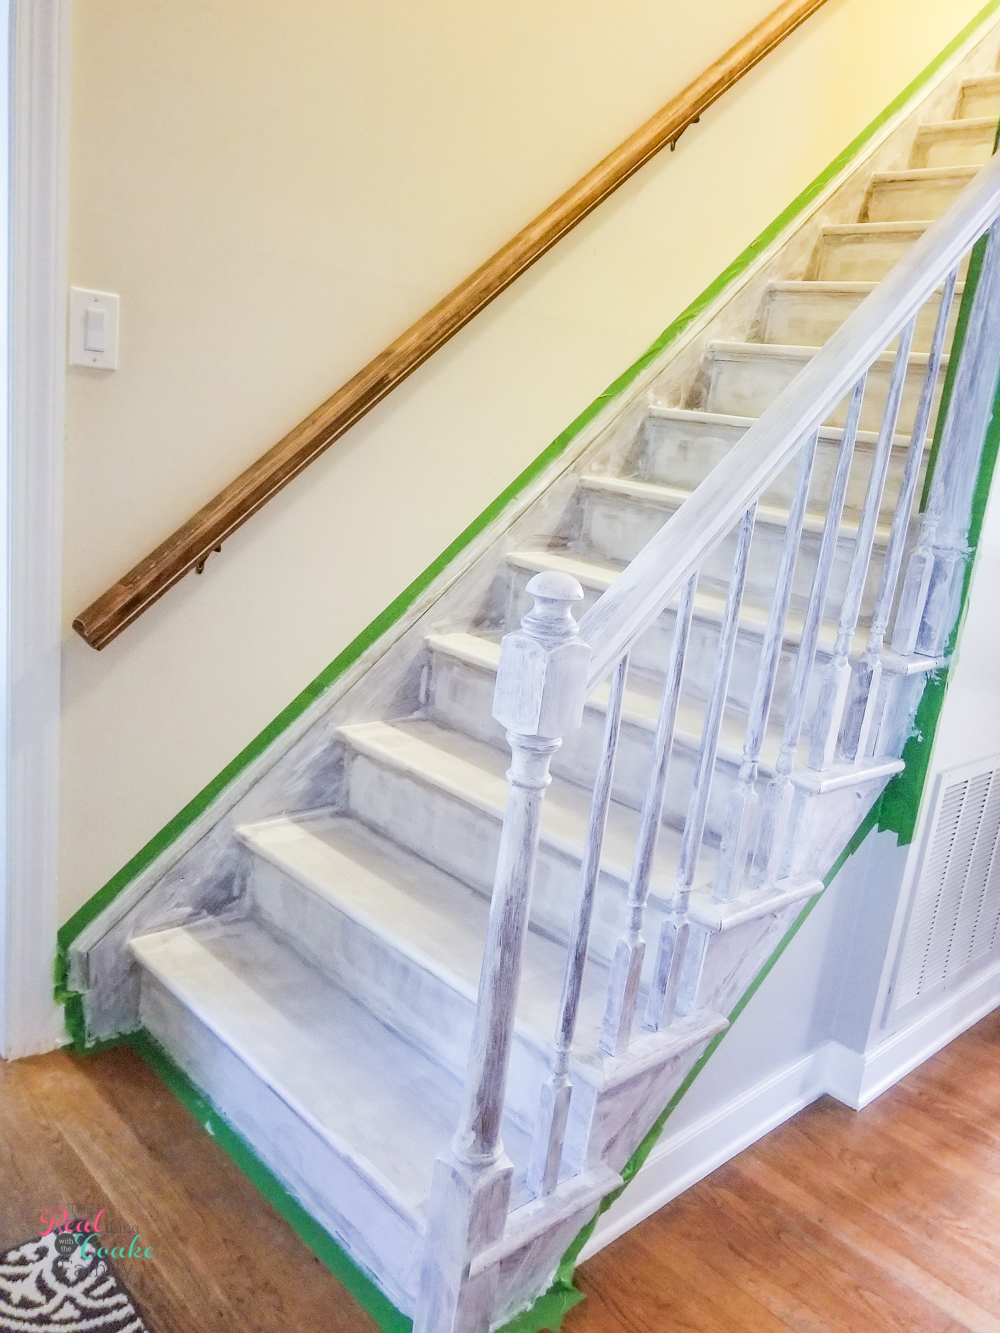 stairs taped and primed for painting